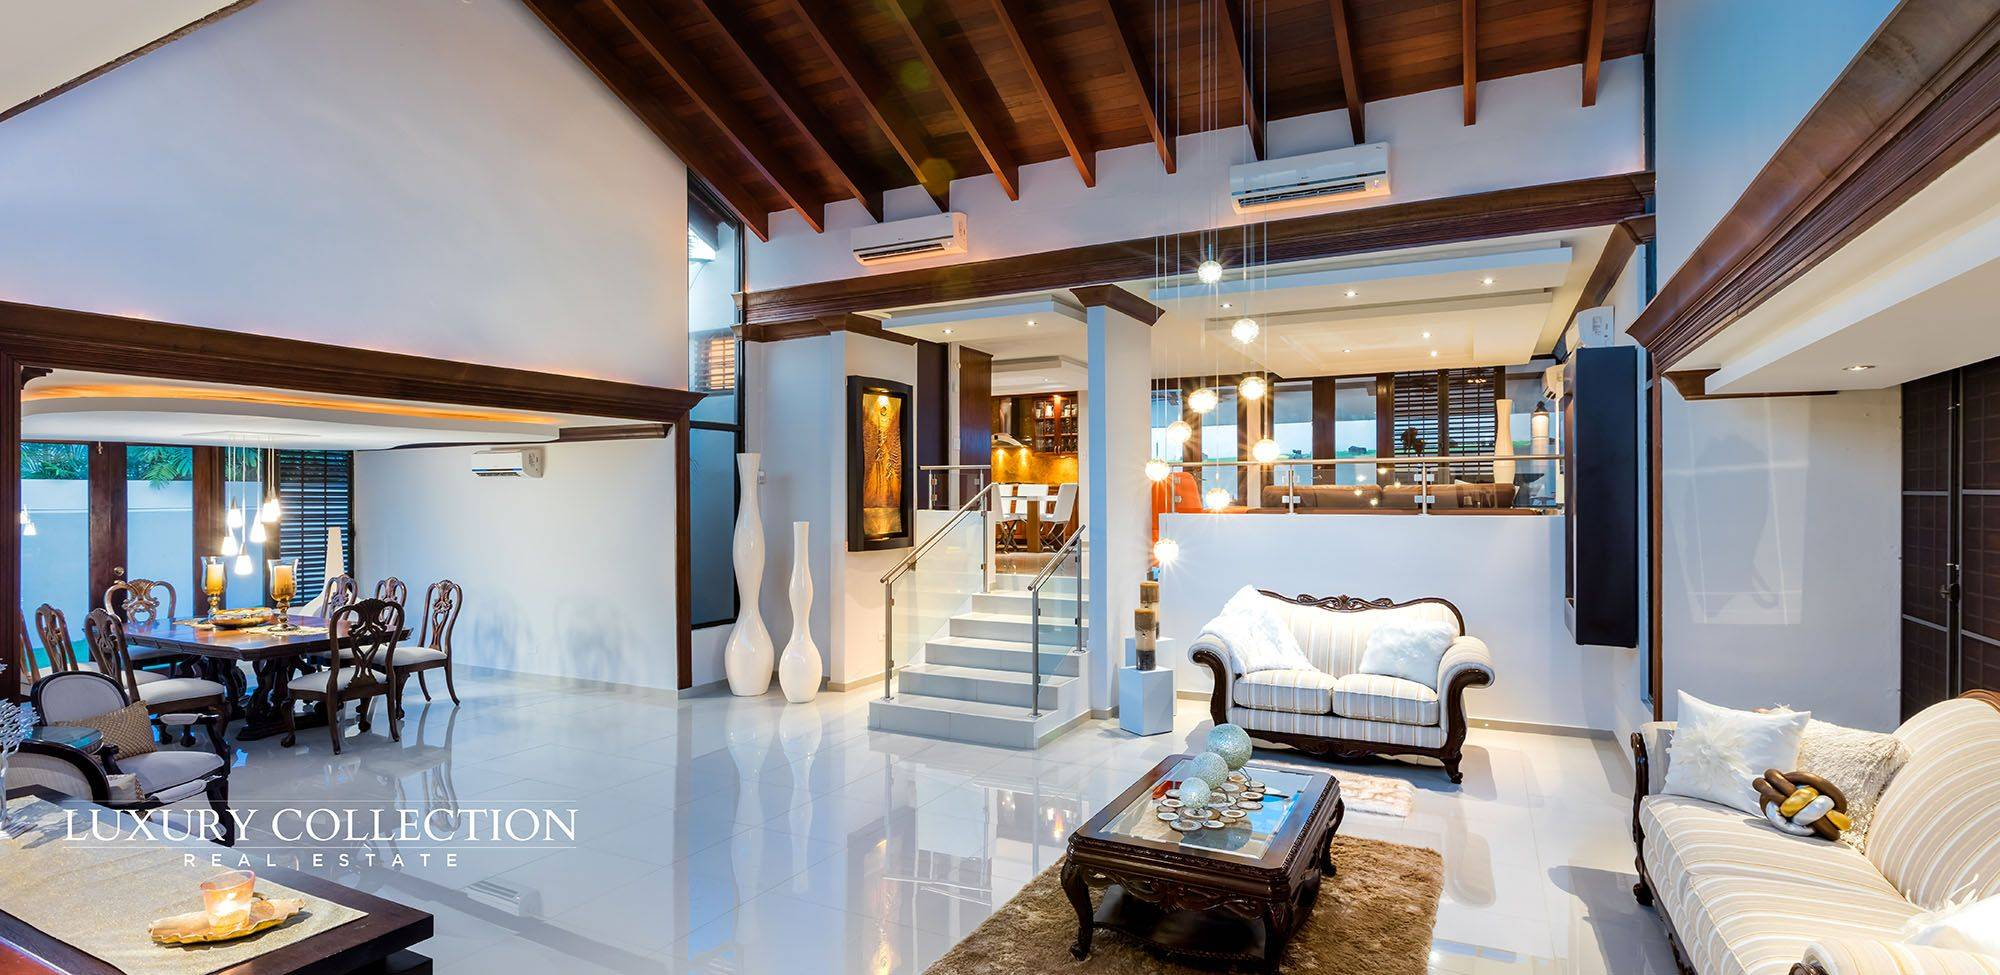 Luxury Collection La Colina H Luxury Collection Real Estate